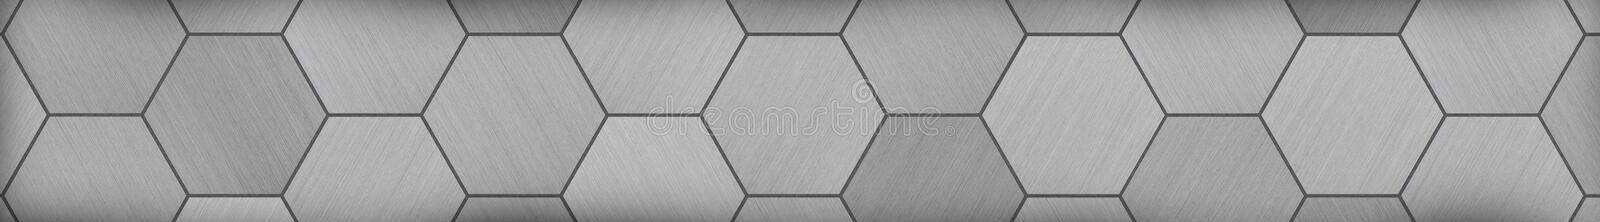 Hexagonal Aluminum Panoramic Metal Background (Letterbox Format). Hexagonal brushed alunimun tiles as an extra wide background stock photos